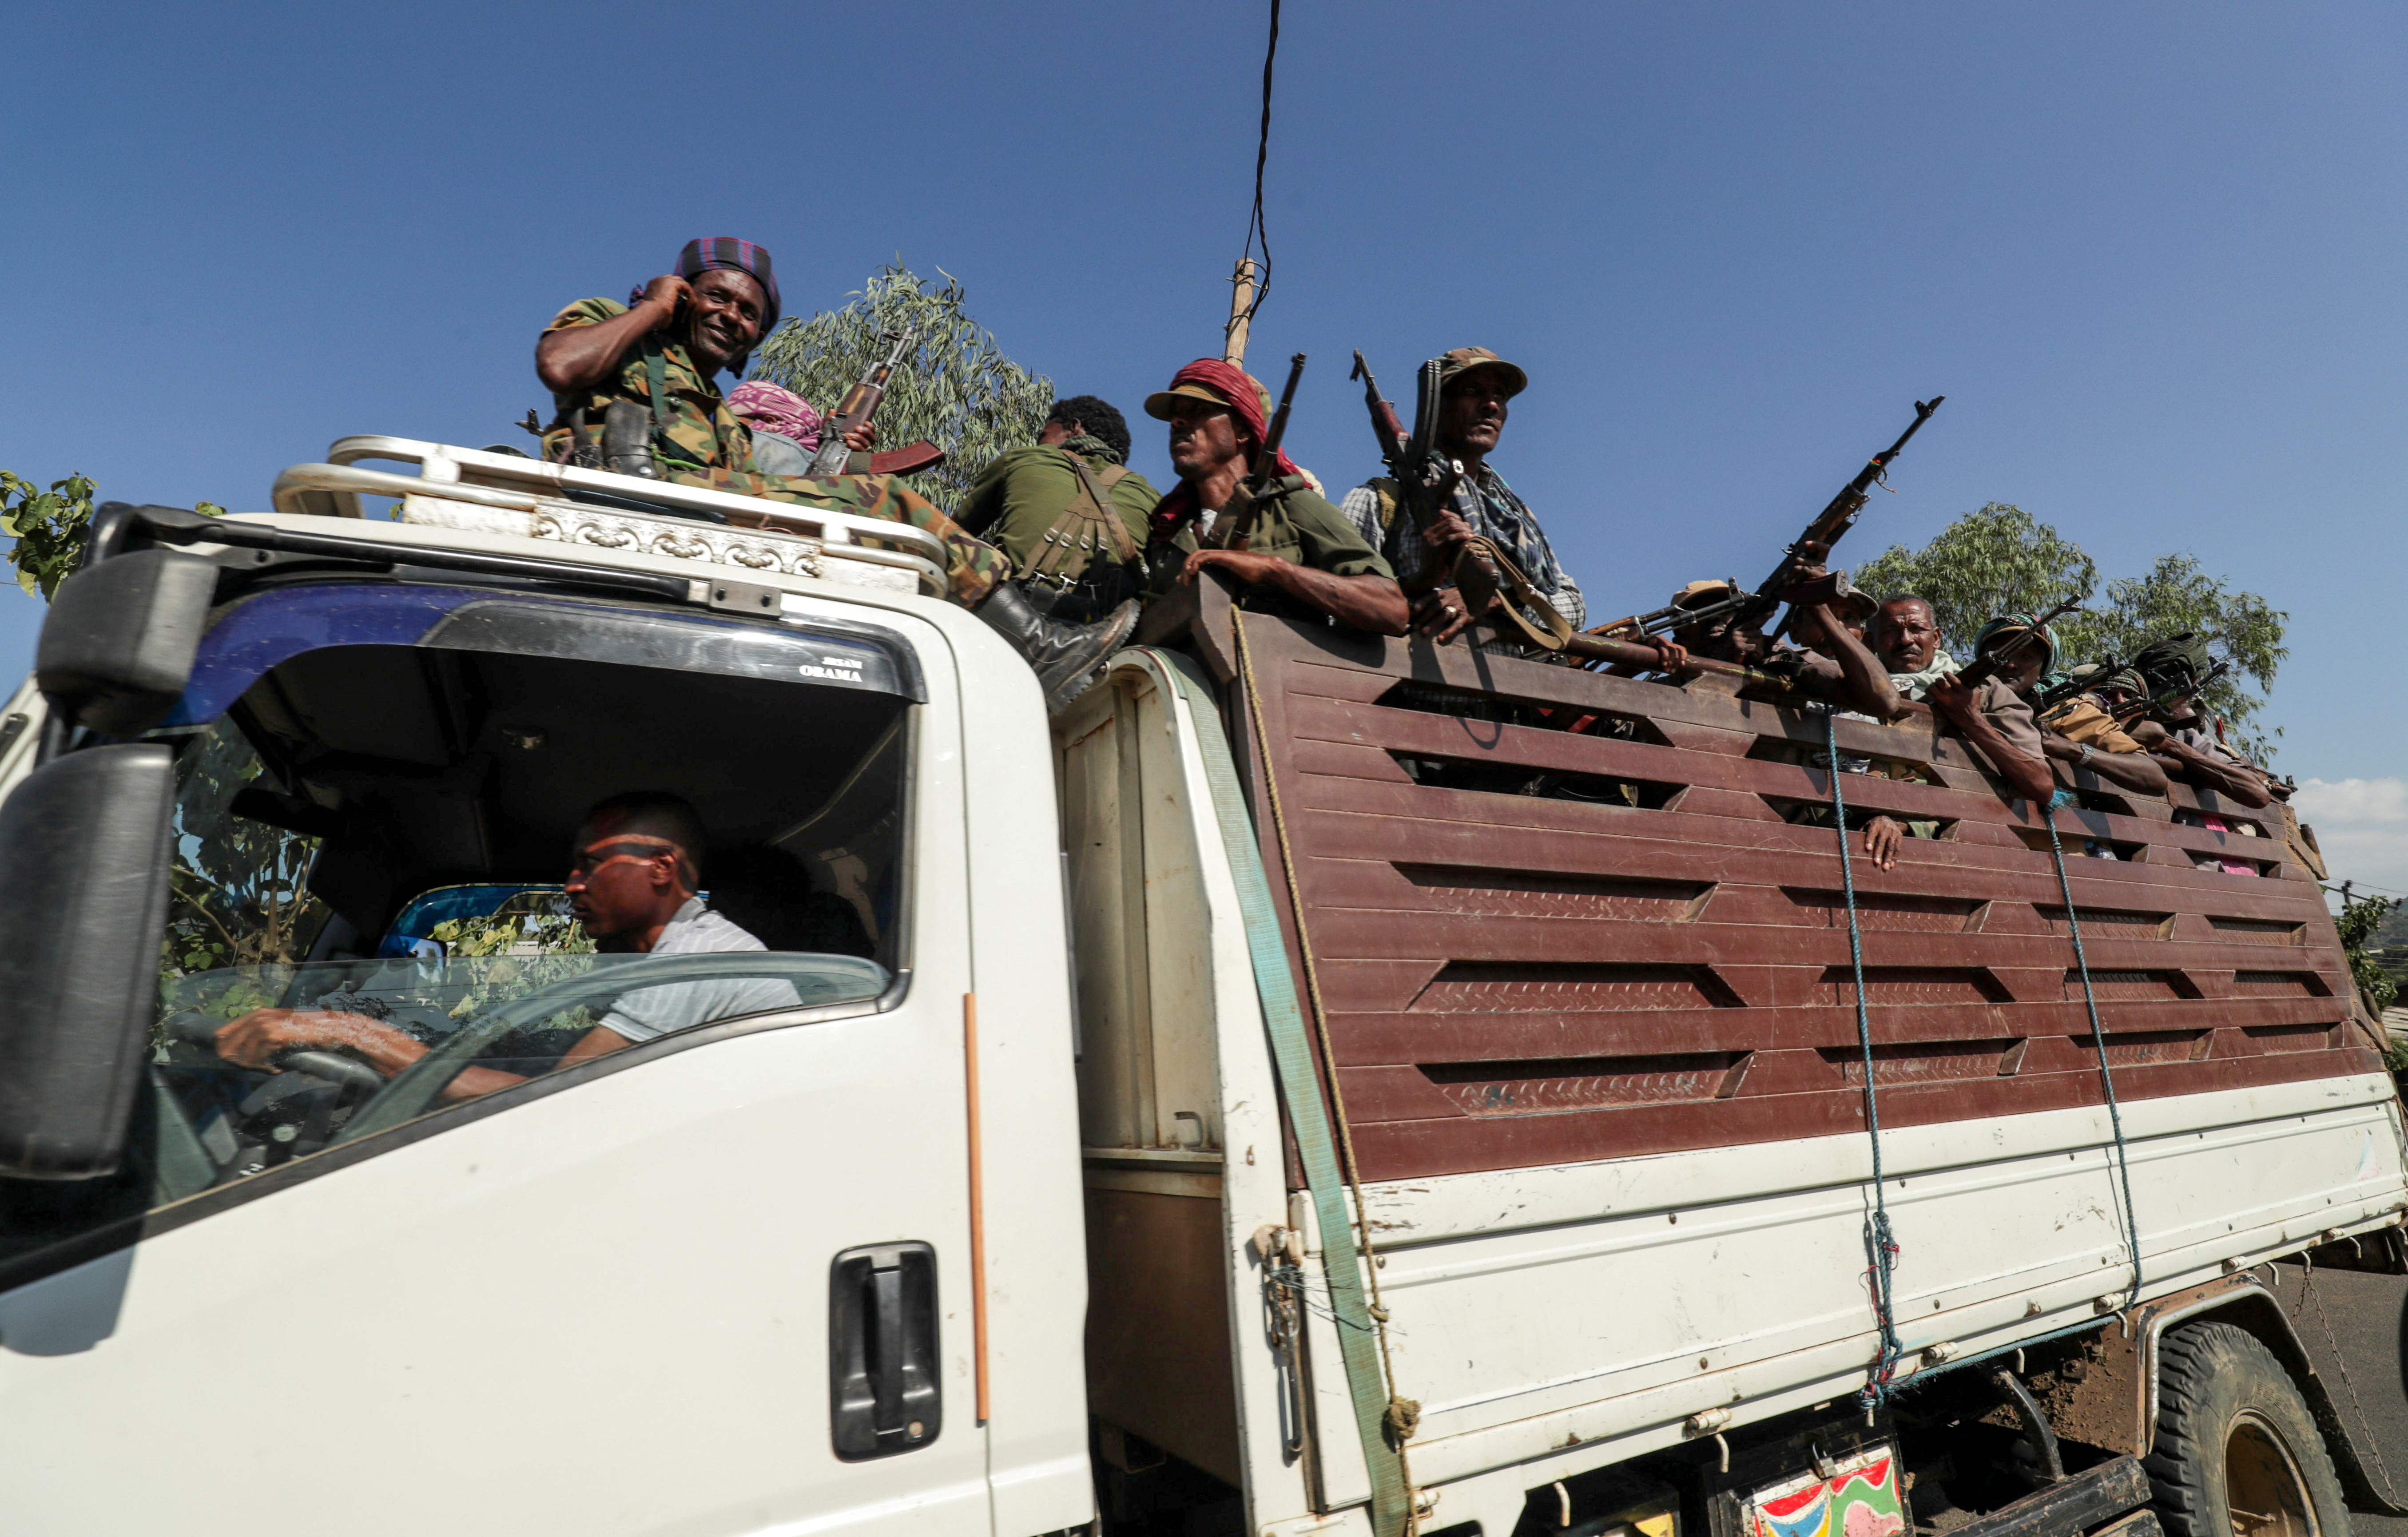 FILE PHOTO: Members of Amhara region militias ride on their truck as they head to face the Tigray People's Liberation Front (TPLF), in Sanja, Amhara region near a border with Tigray, Ethiopia November 9, 2020. REUTERS/Tiksa Negeri/File Photo